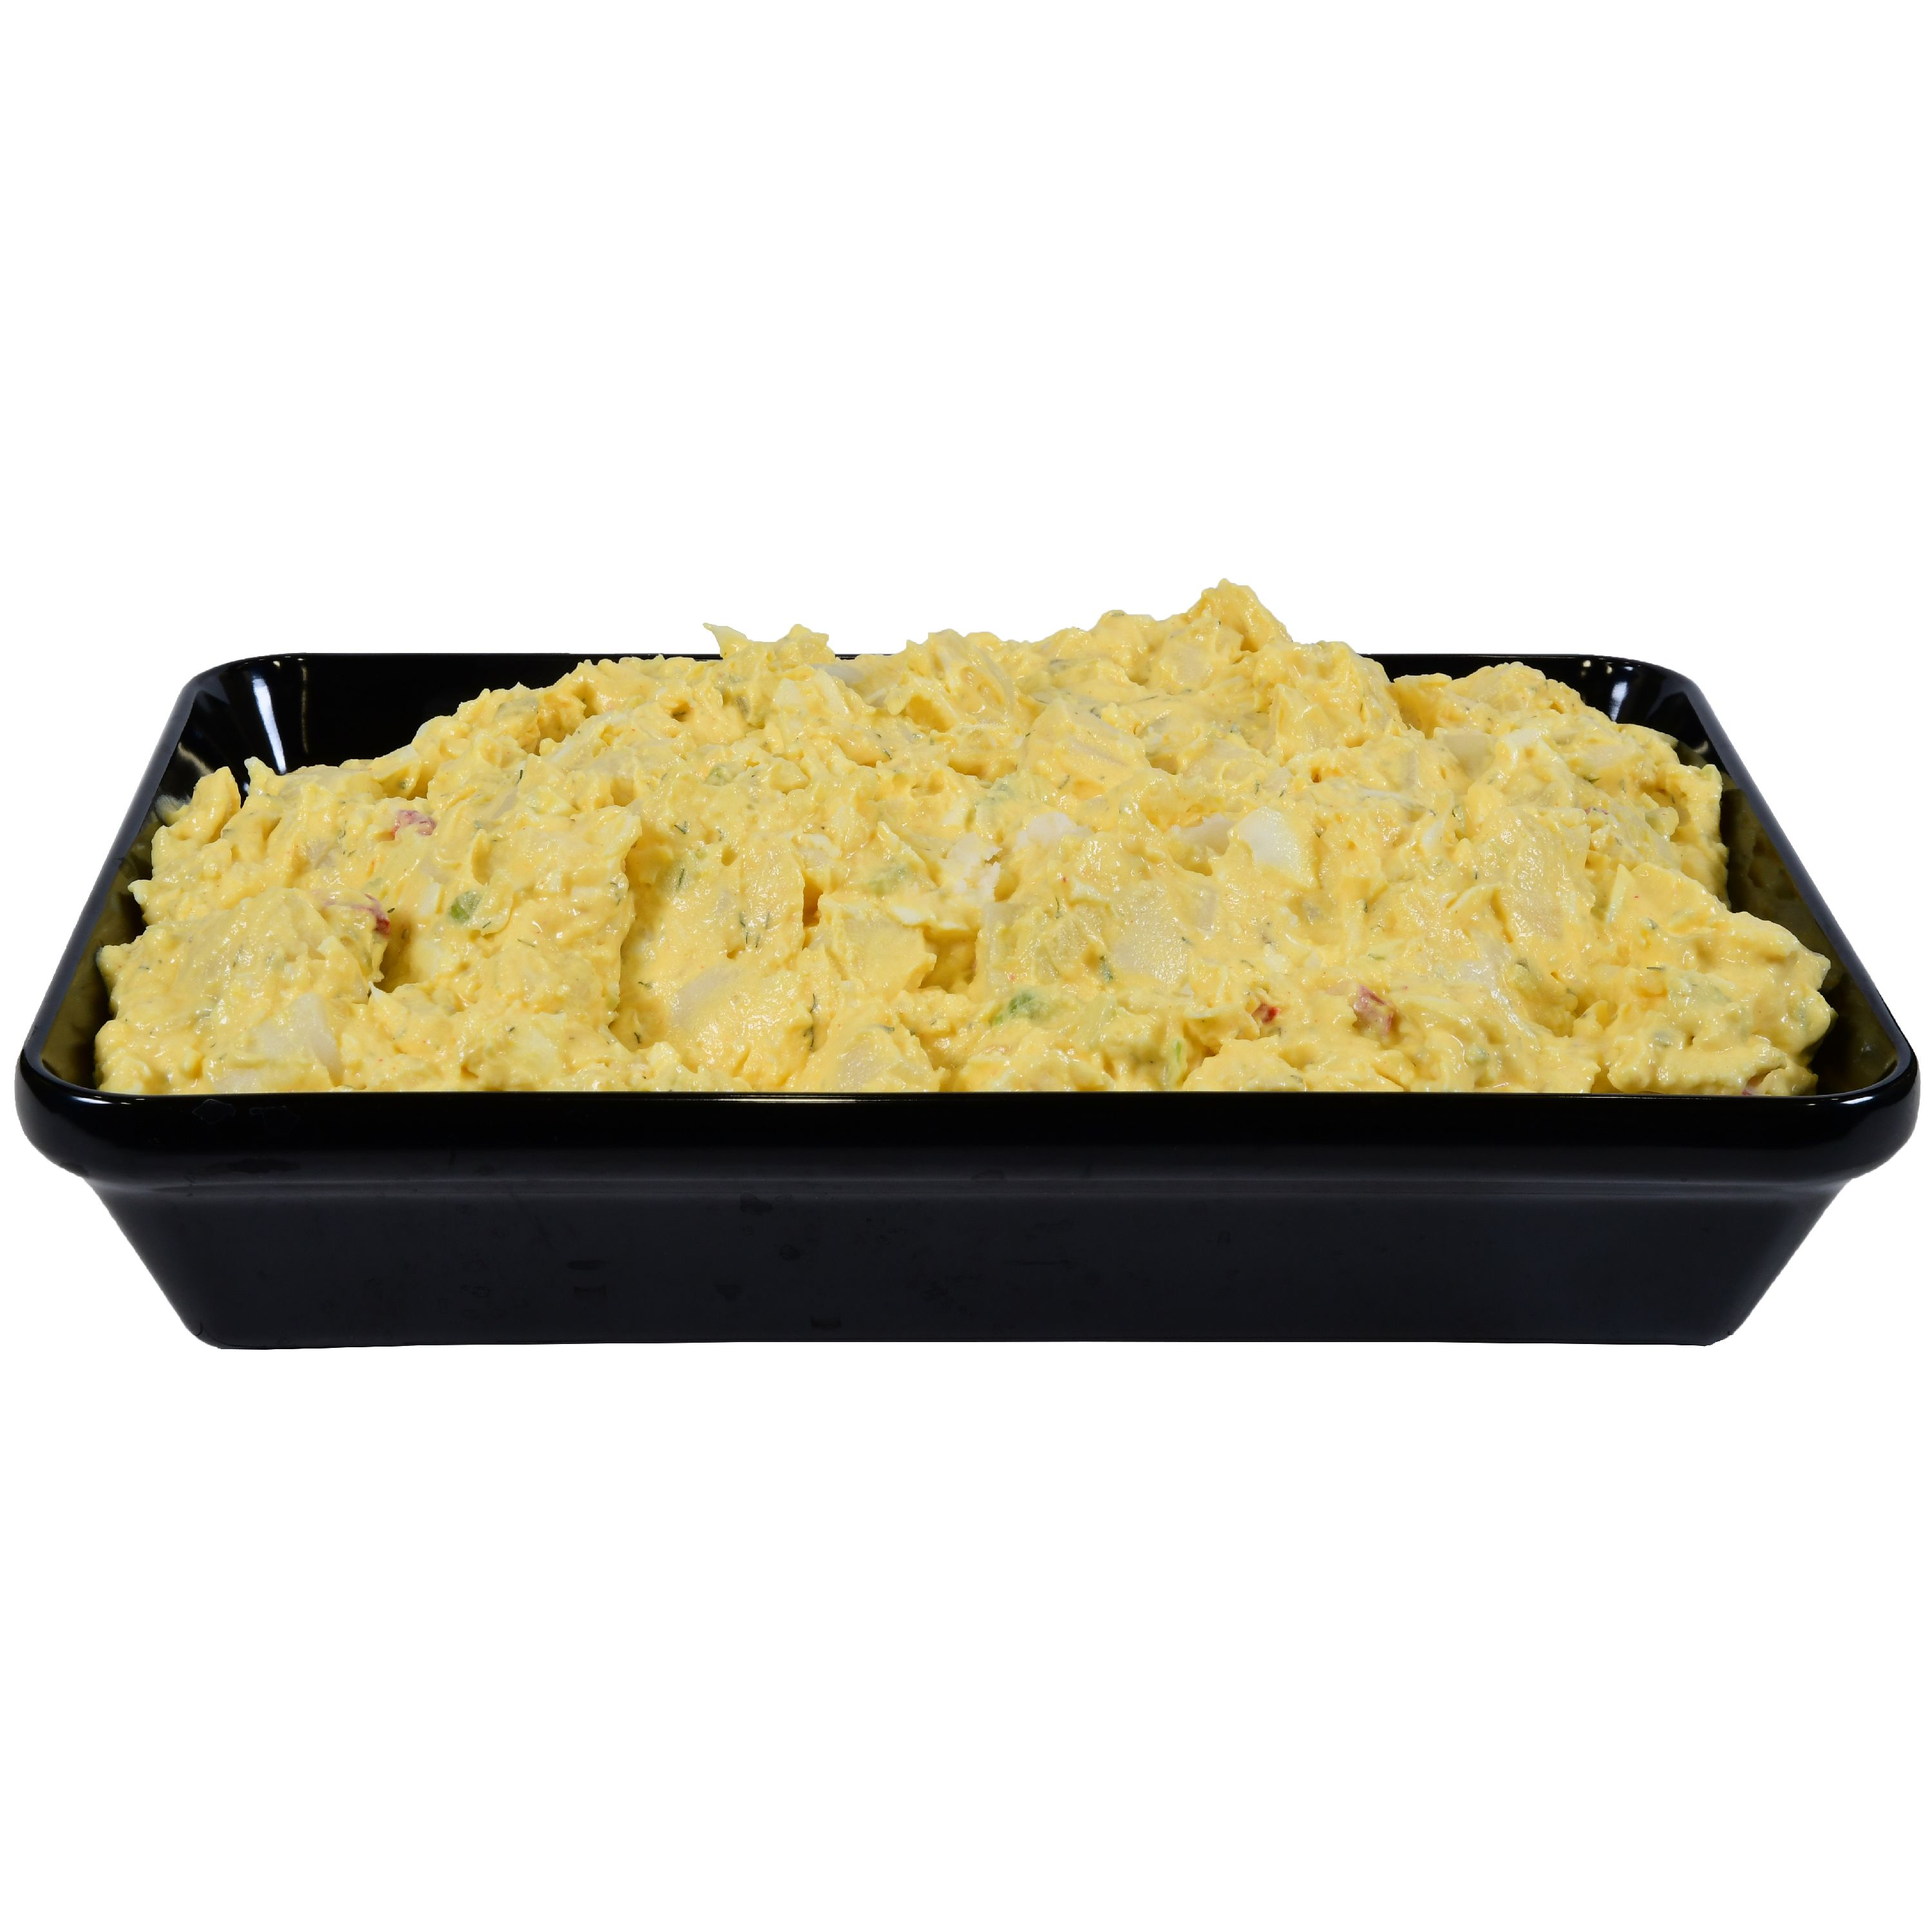 Reser's Fine Foods Deviled Egg Potato Salad